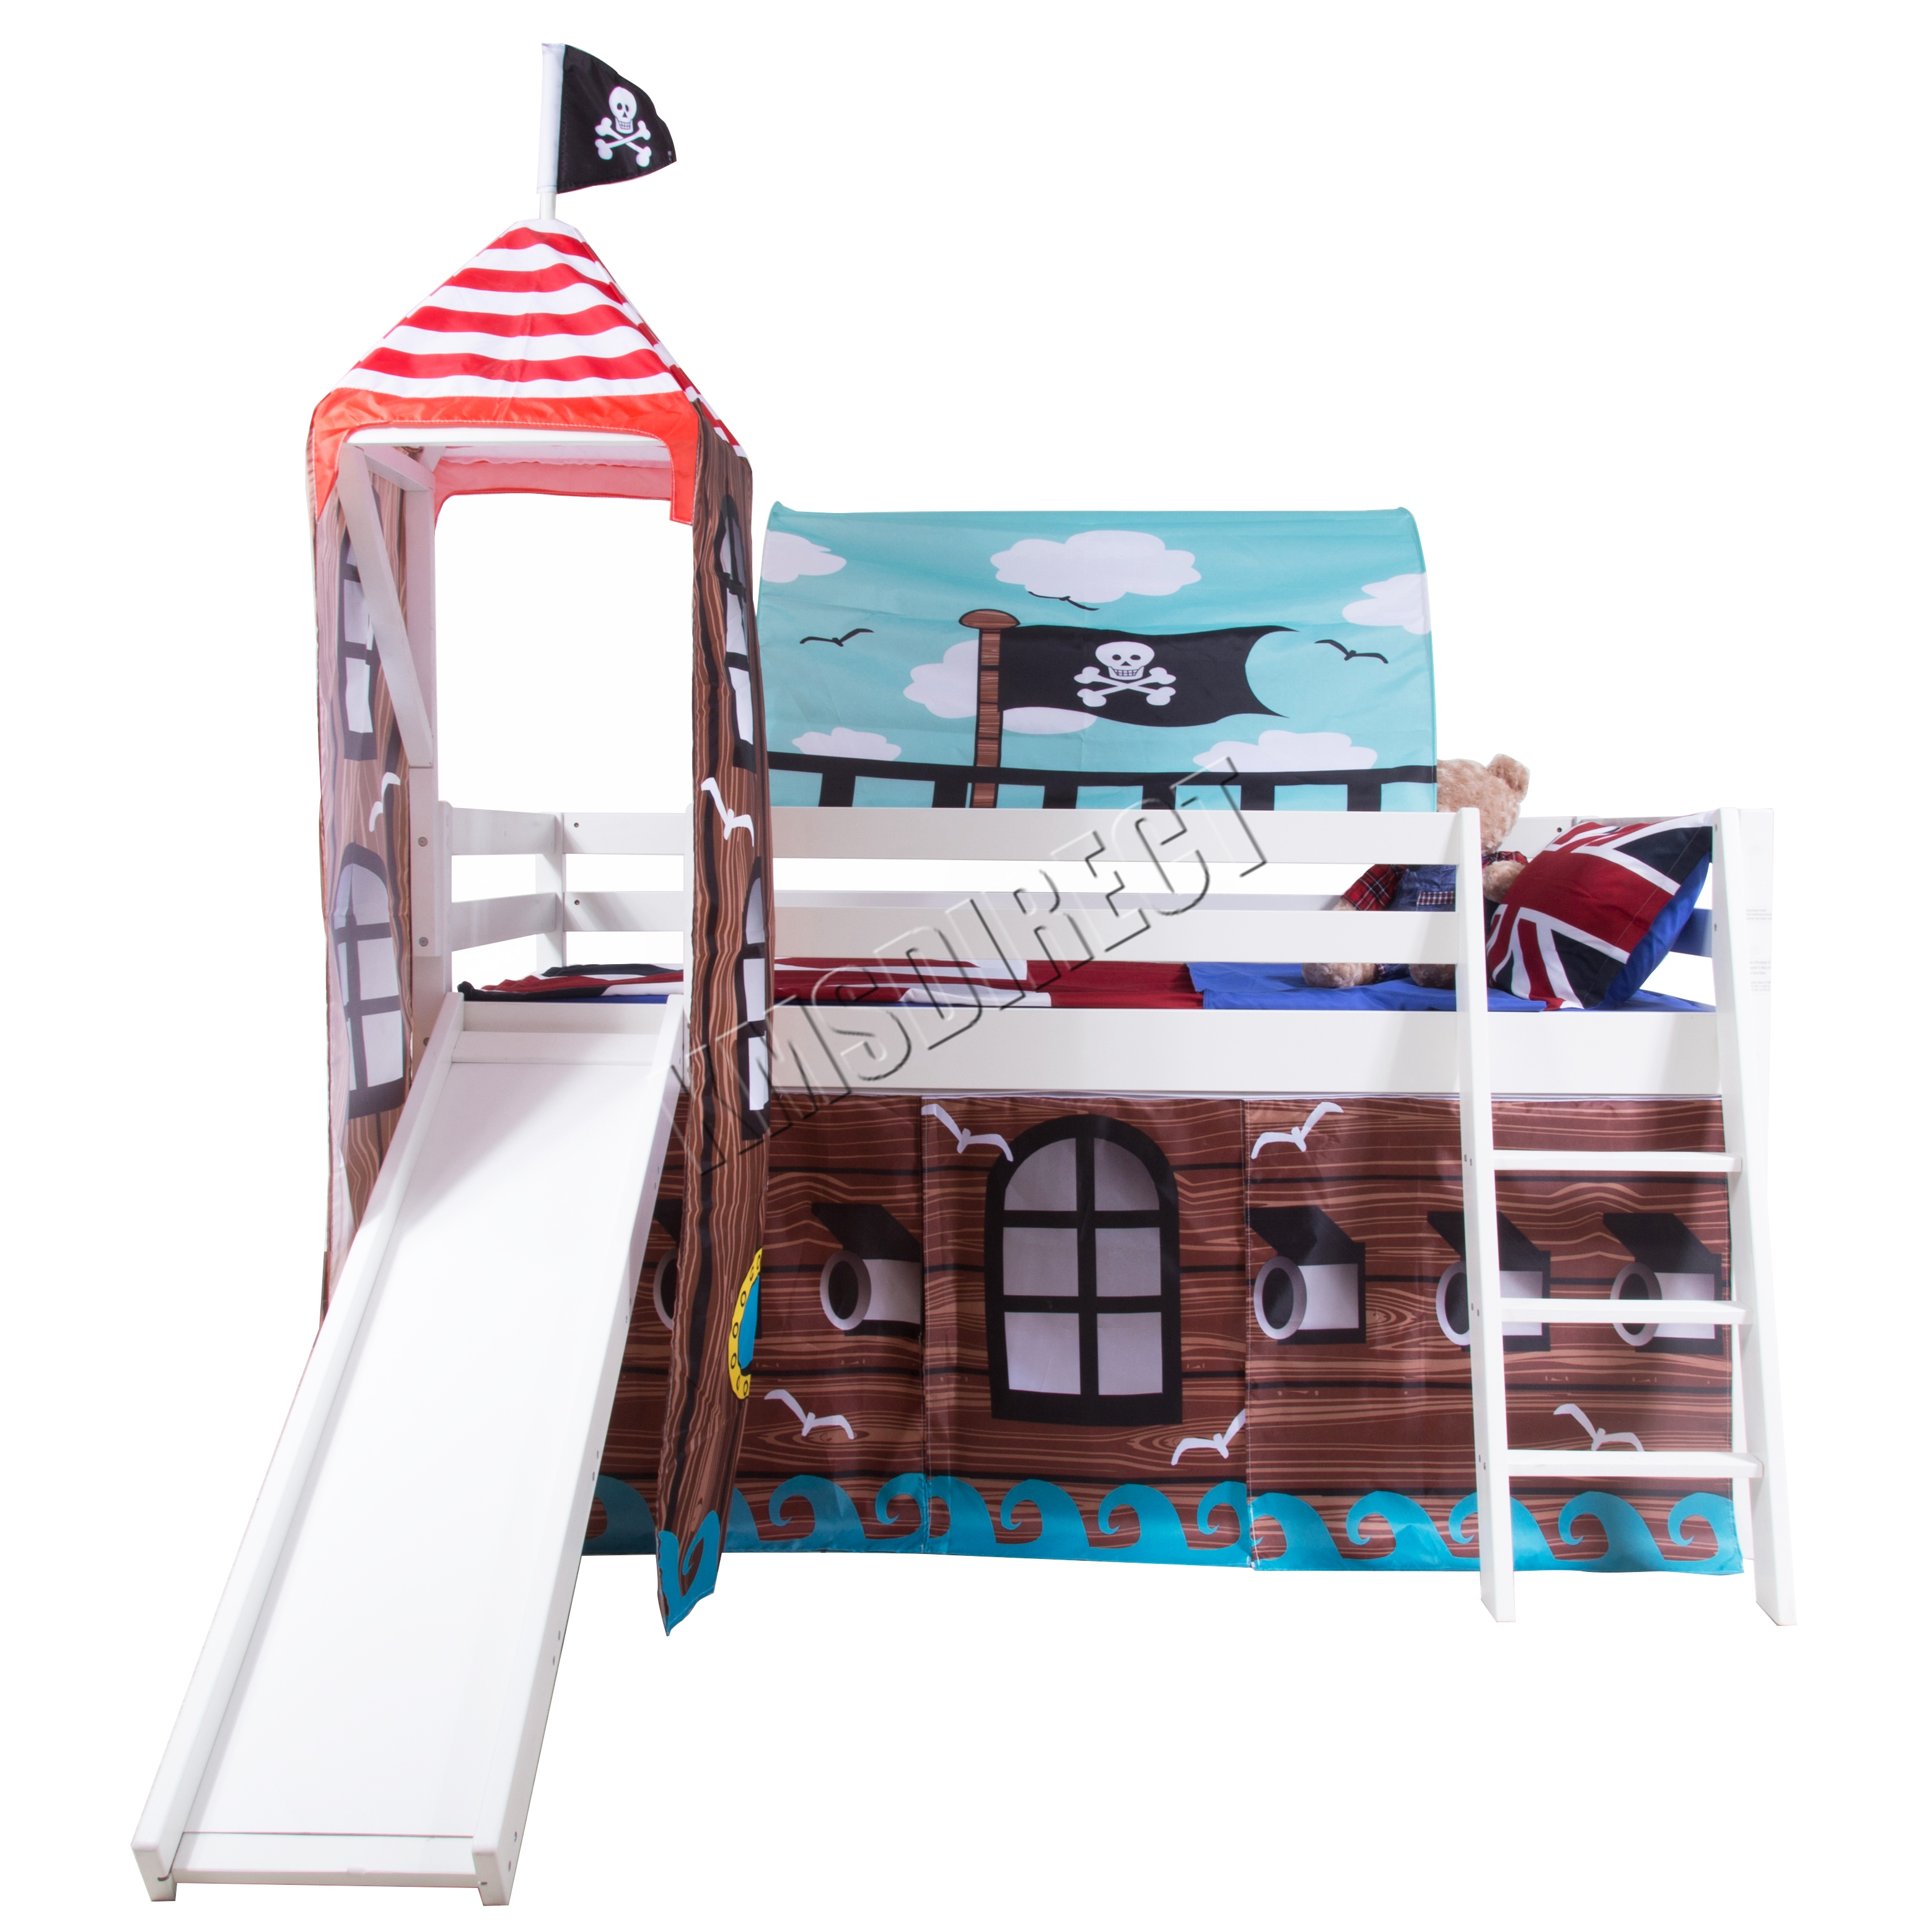 Foxhunter wood mid sleeper cabin bunk bed kids tent slide for White bunk bed frame